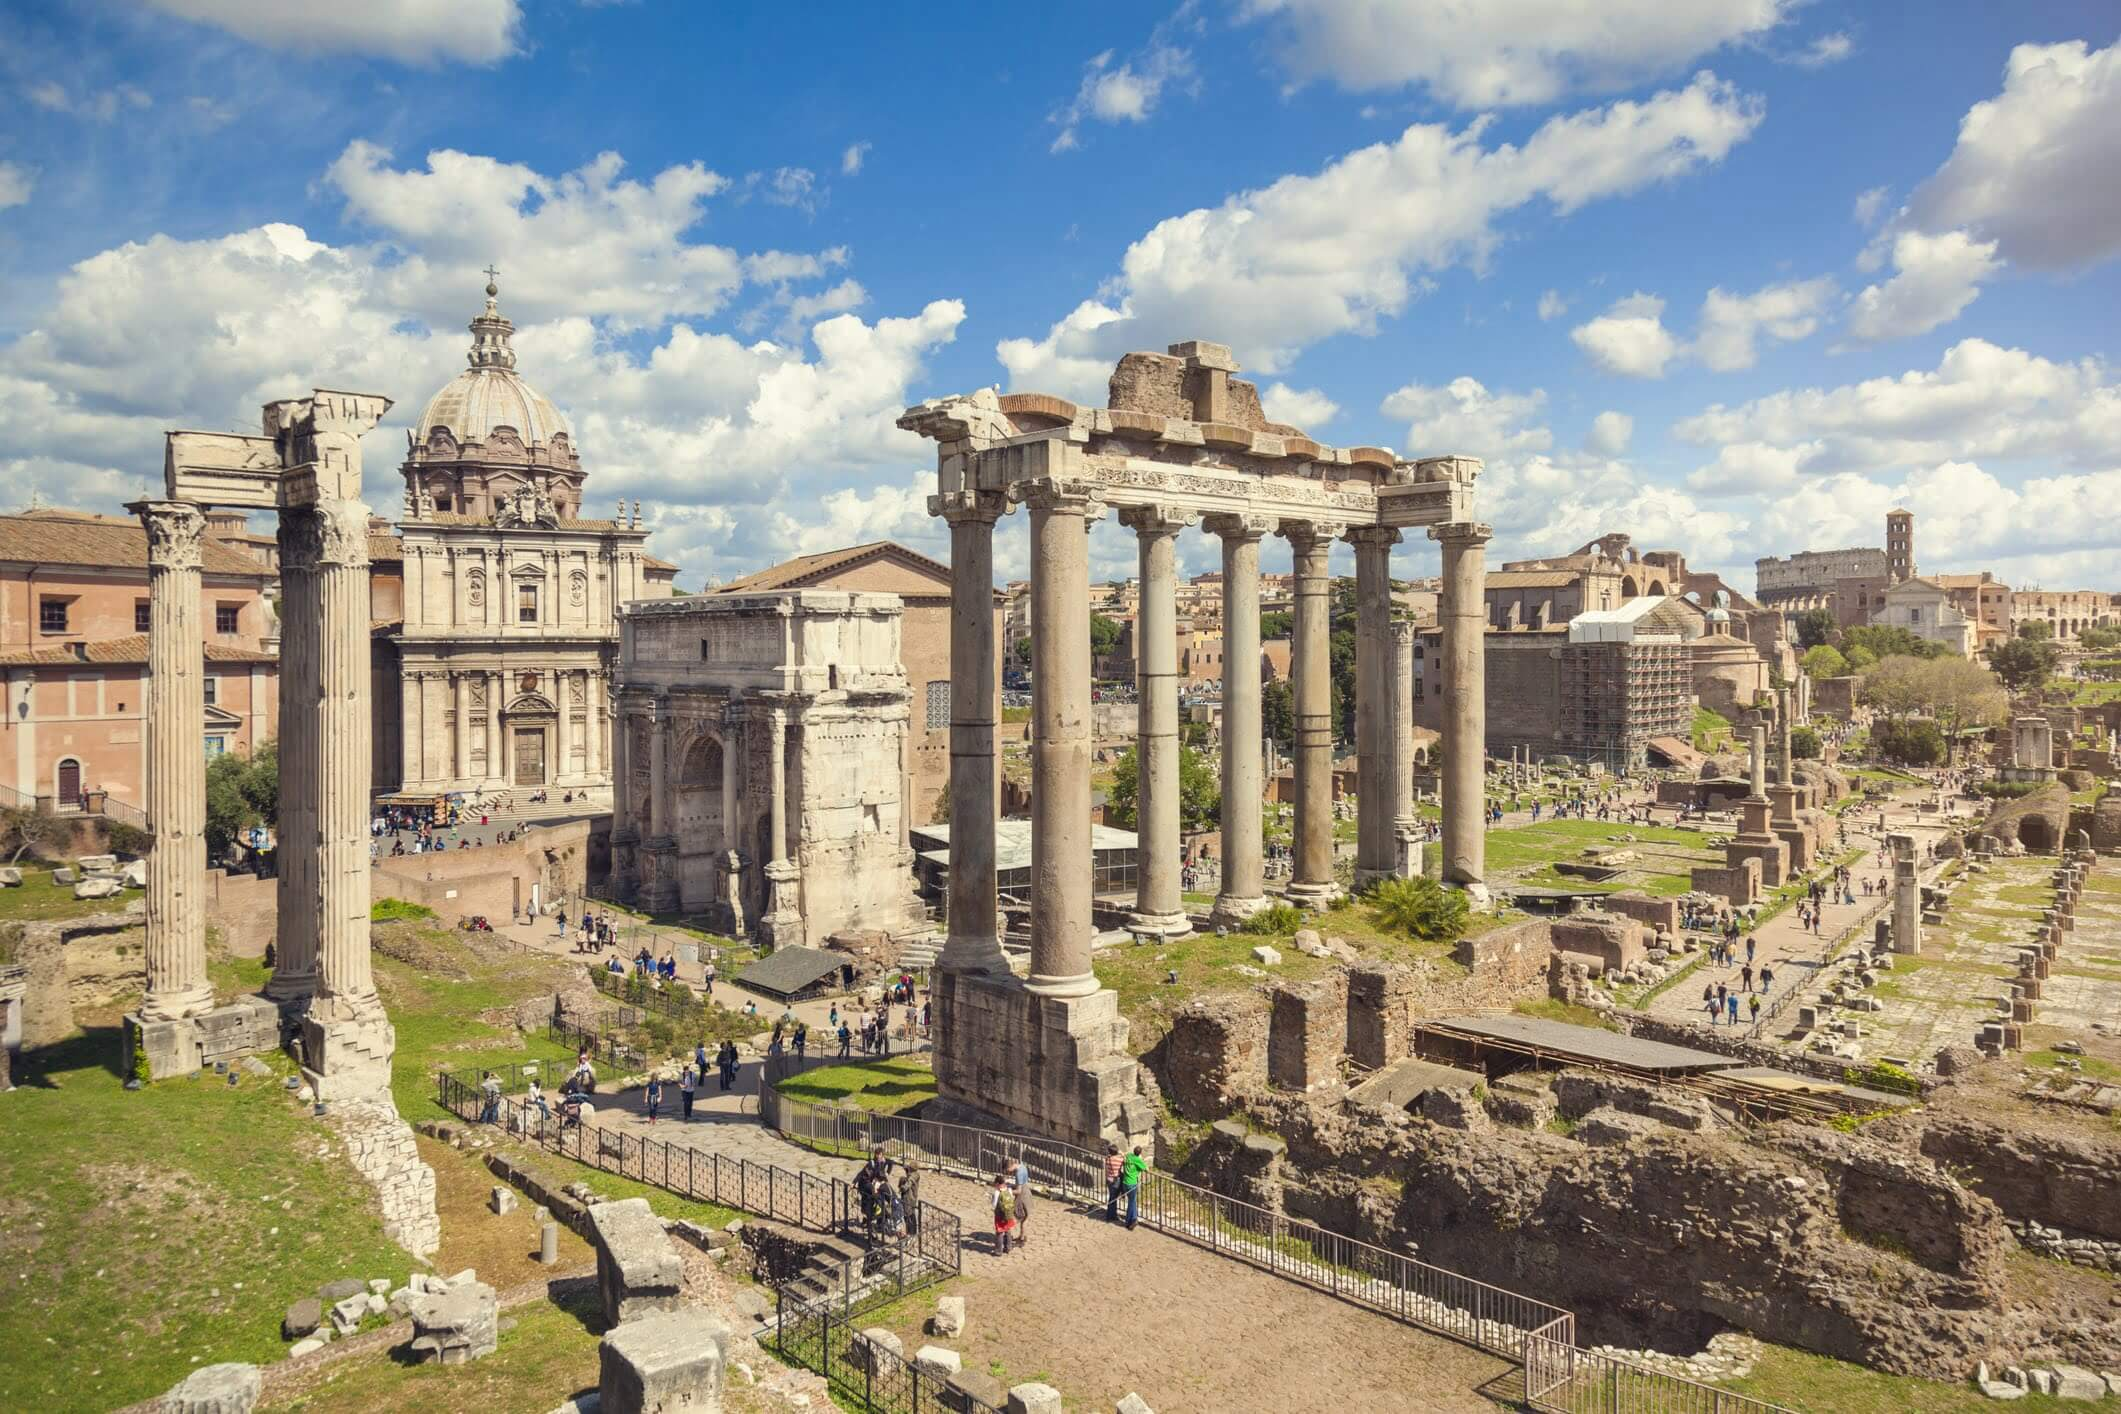 The Roman Forum with a view of the Temple of Saturn